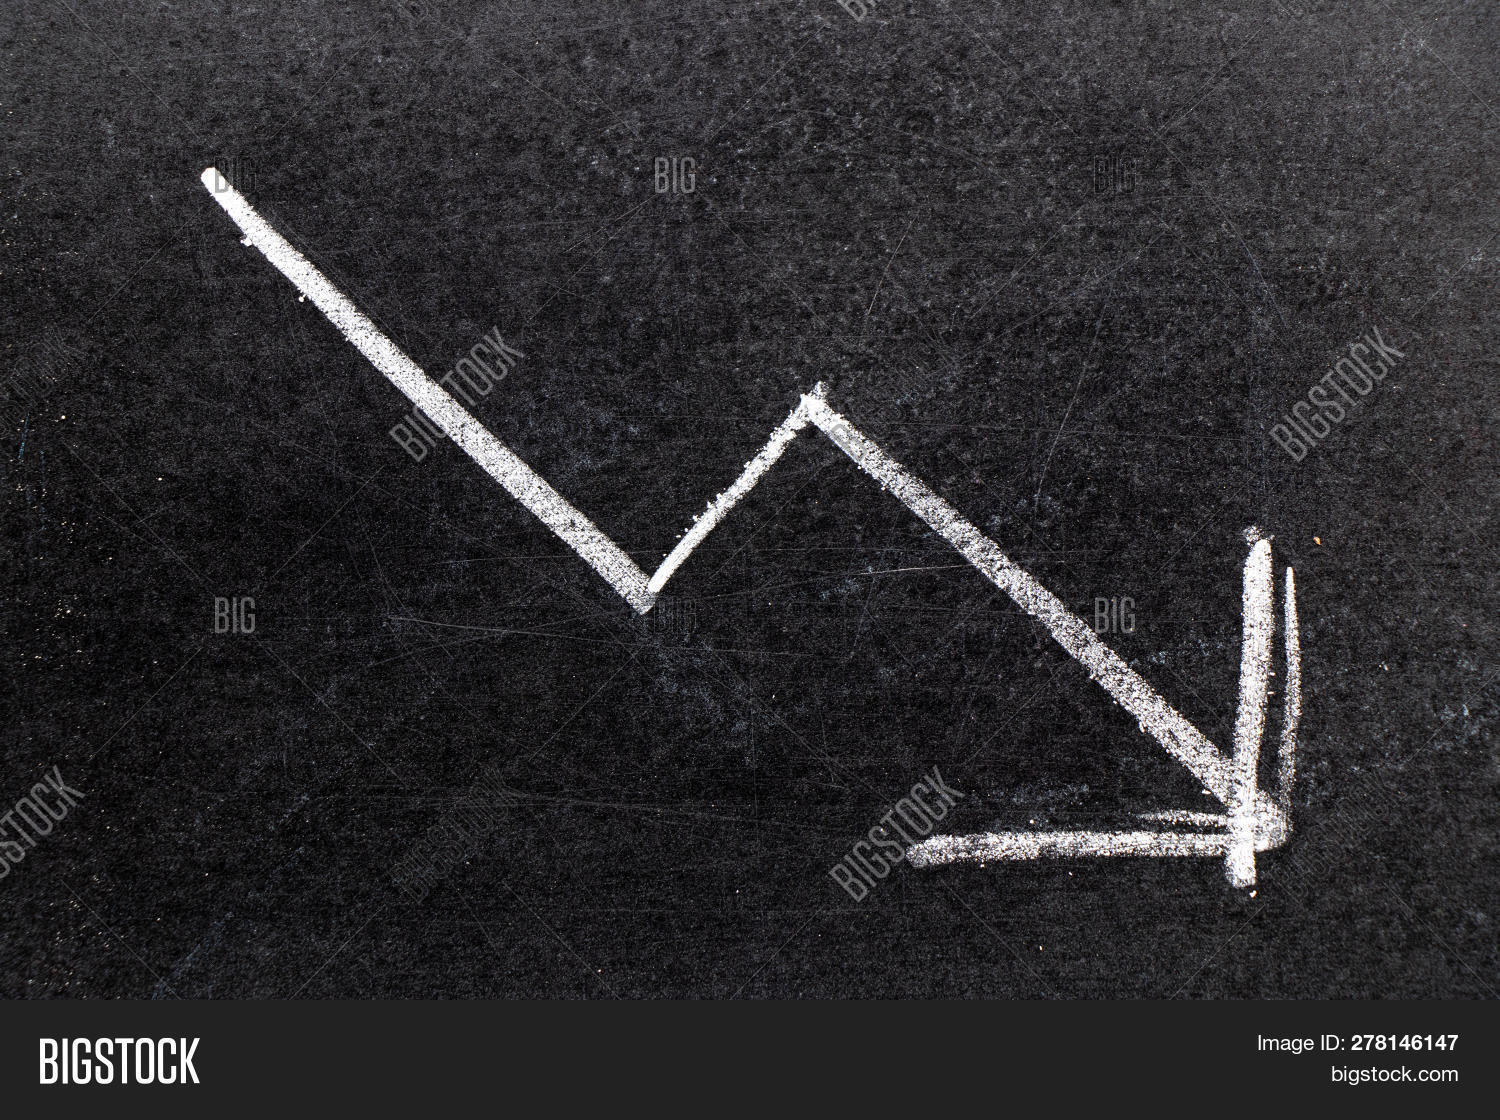 abstract,arrow,background,black,blackboard,board,business,chalk,chalkboard,chart,concept,crash,crisis,cursor,decline,decrease,design,diagram,direction,down,drawing,economic,economy,element,exchange,fall,finance,financial,graph,graphic,grunge,hand,icon,index,investment,loss,market,object,panic,price,recession,revenue,sell,shape,sign,statistics,stock,symbol,trend,white